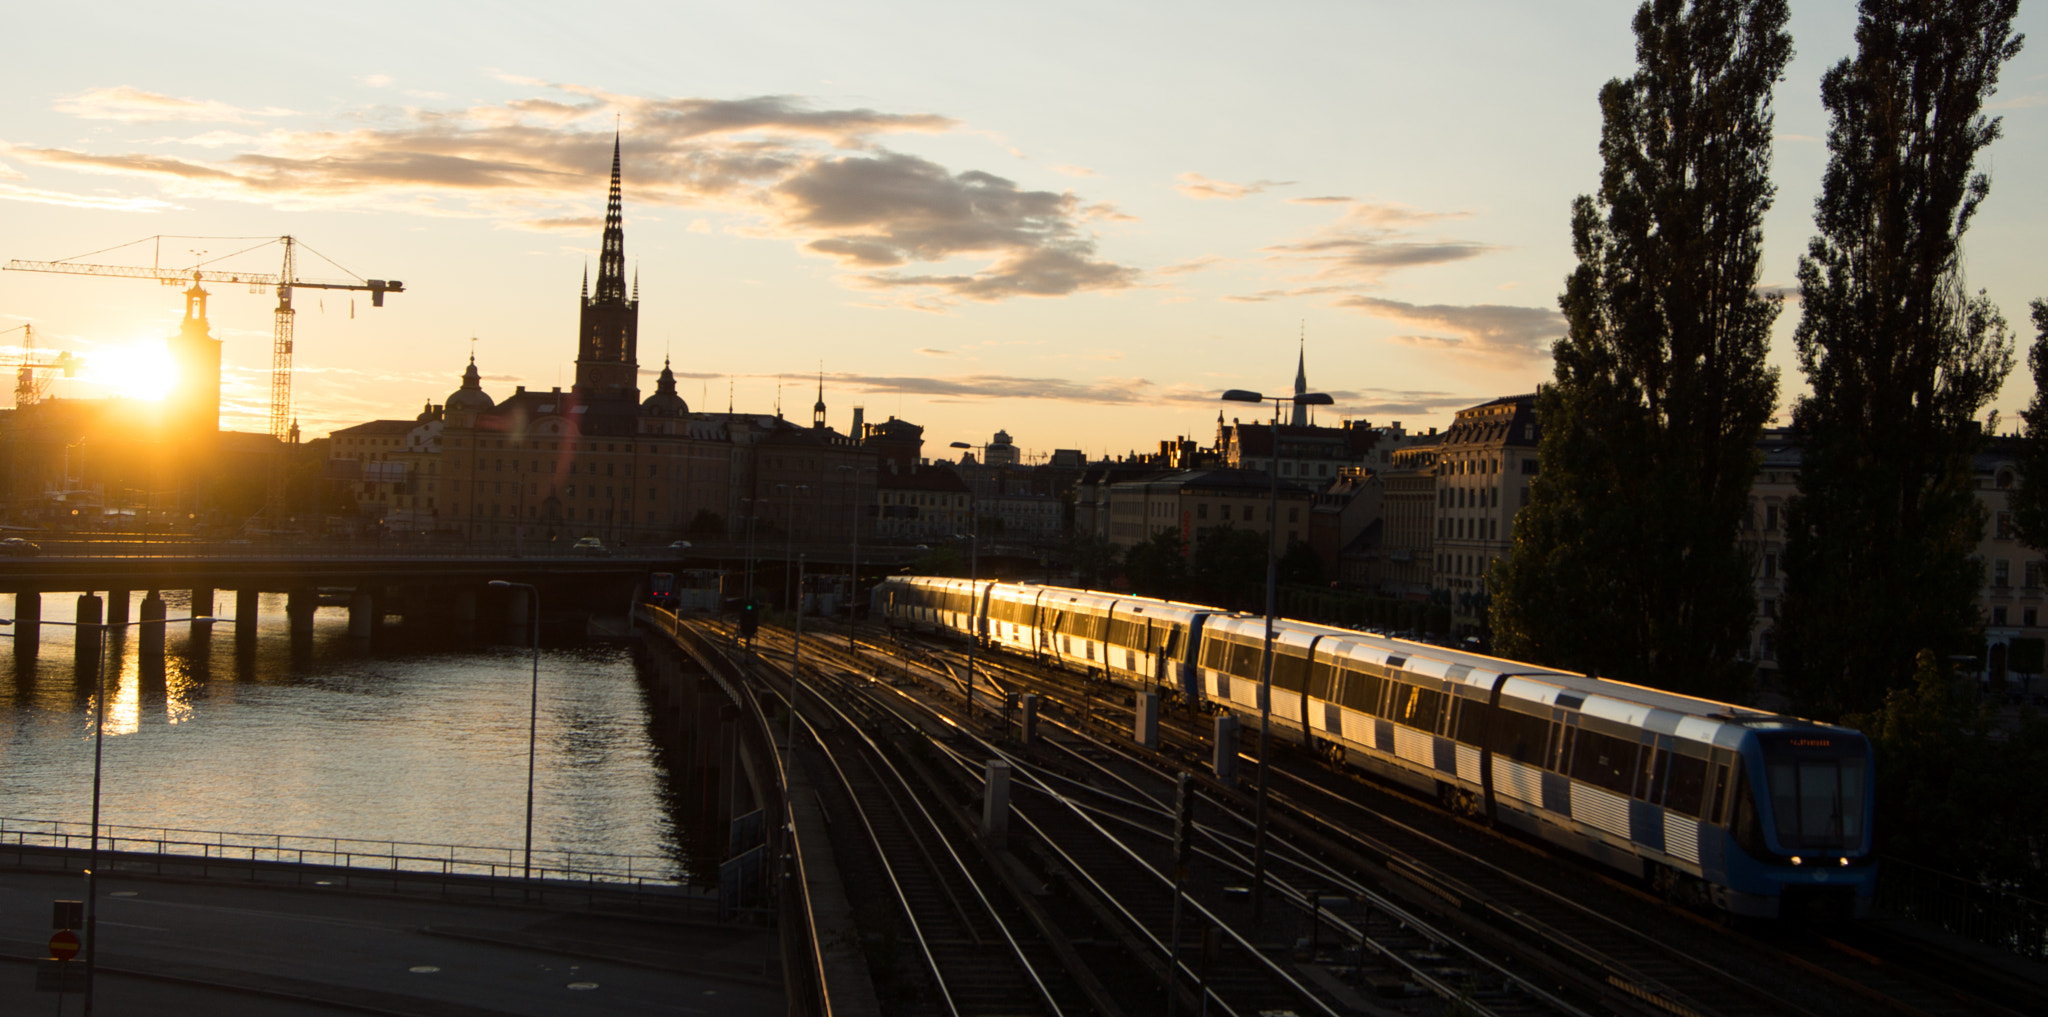 Photograph Stockholm in dusk by Johan Andersson on 500px